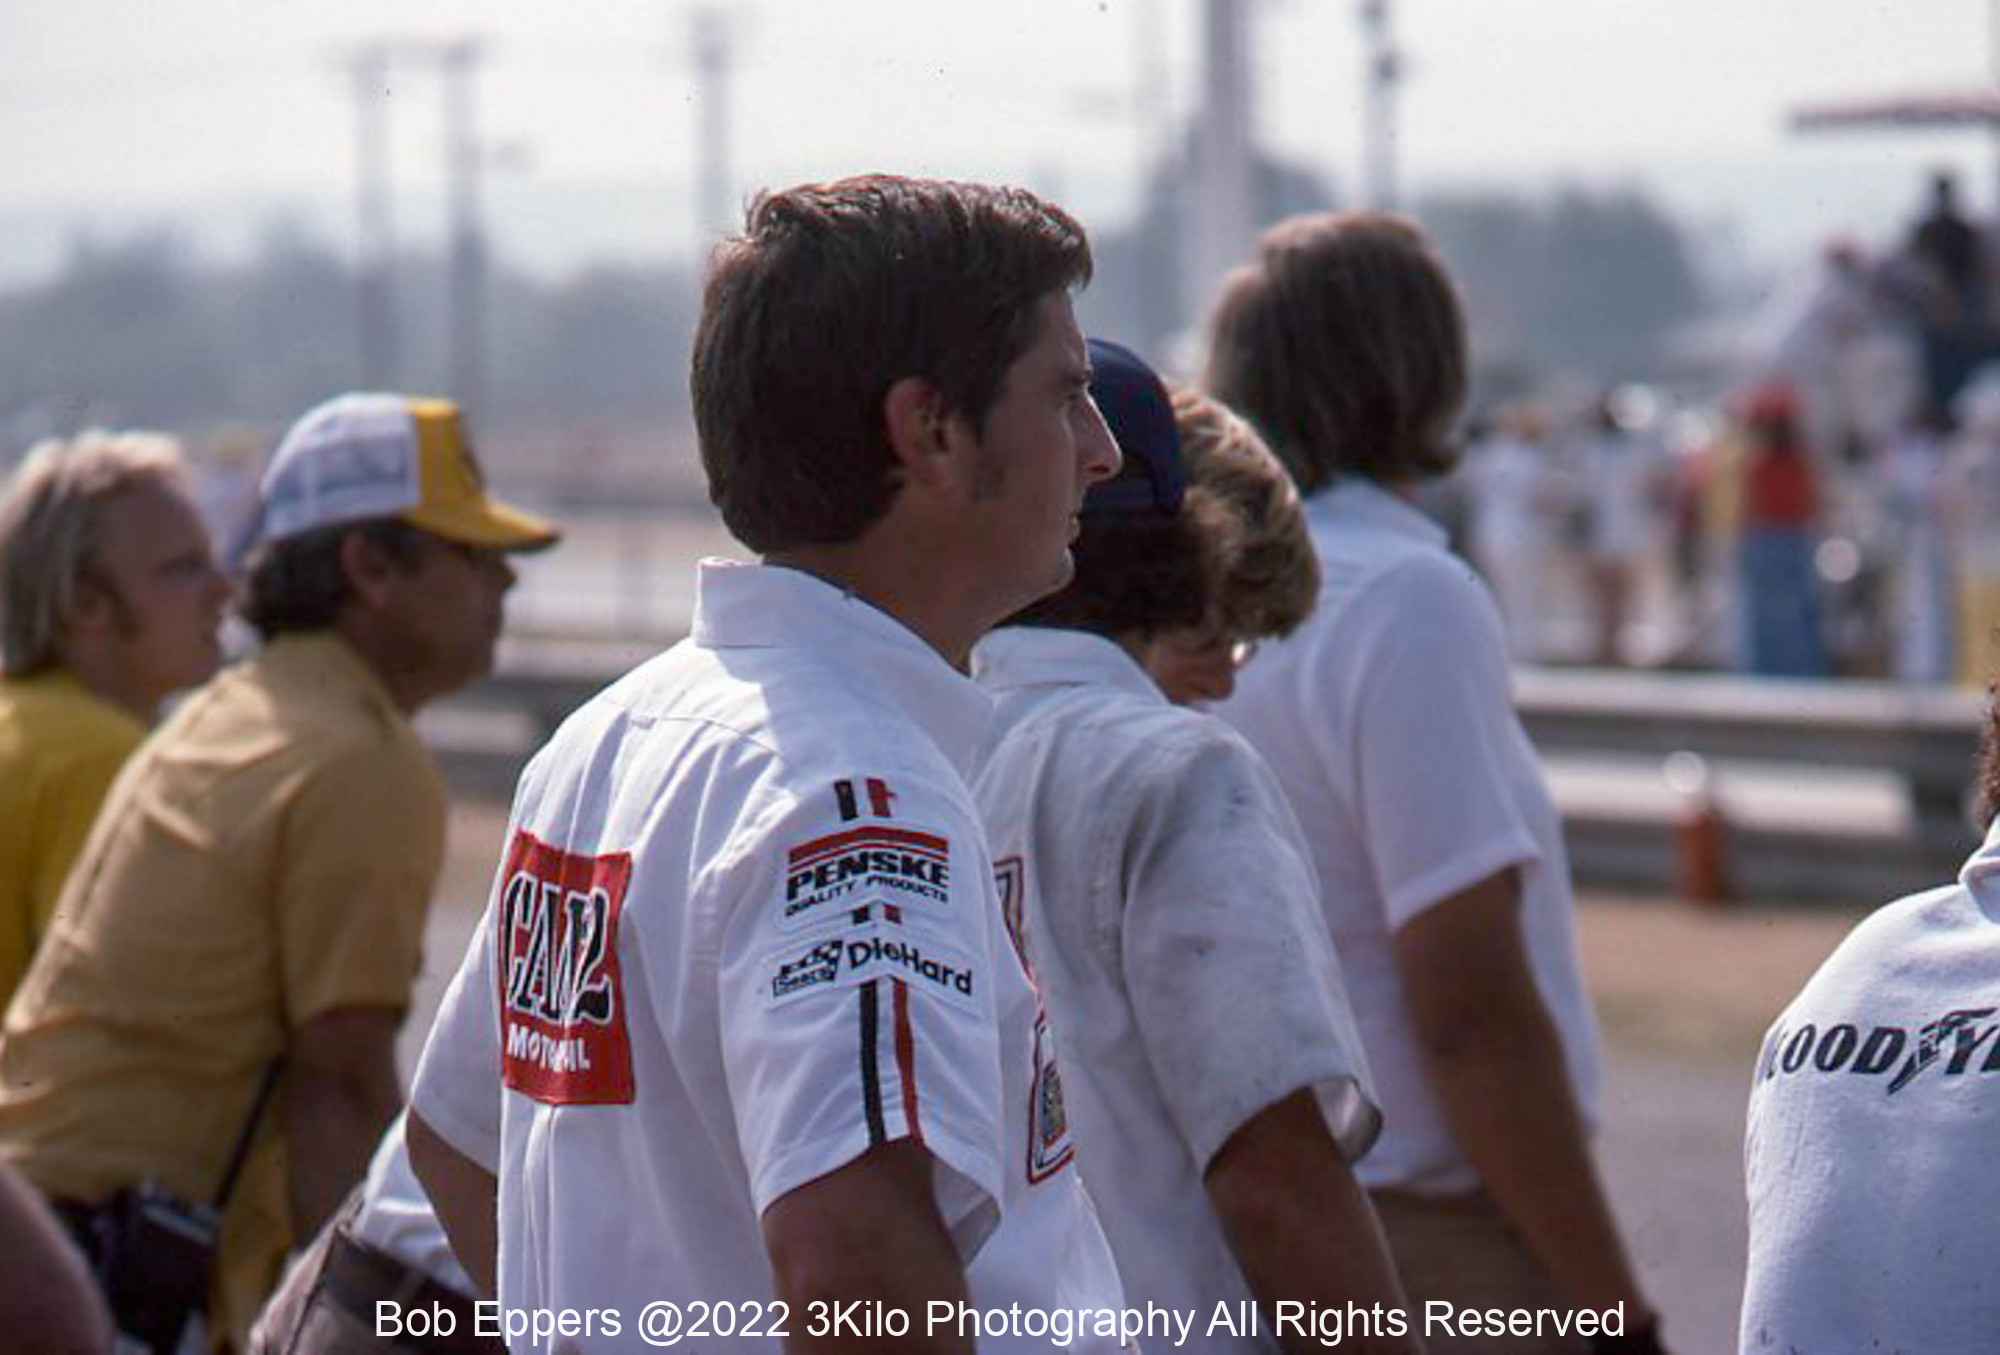 Photo of the IROC race at Riverside,